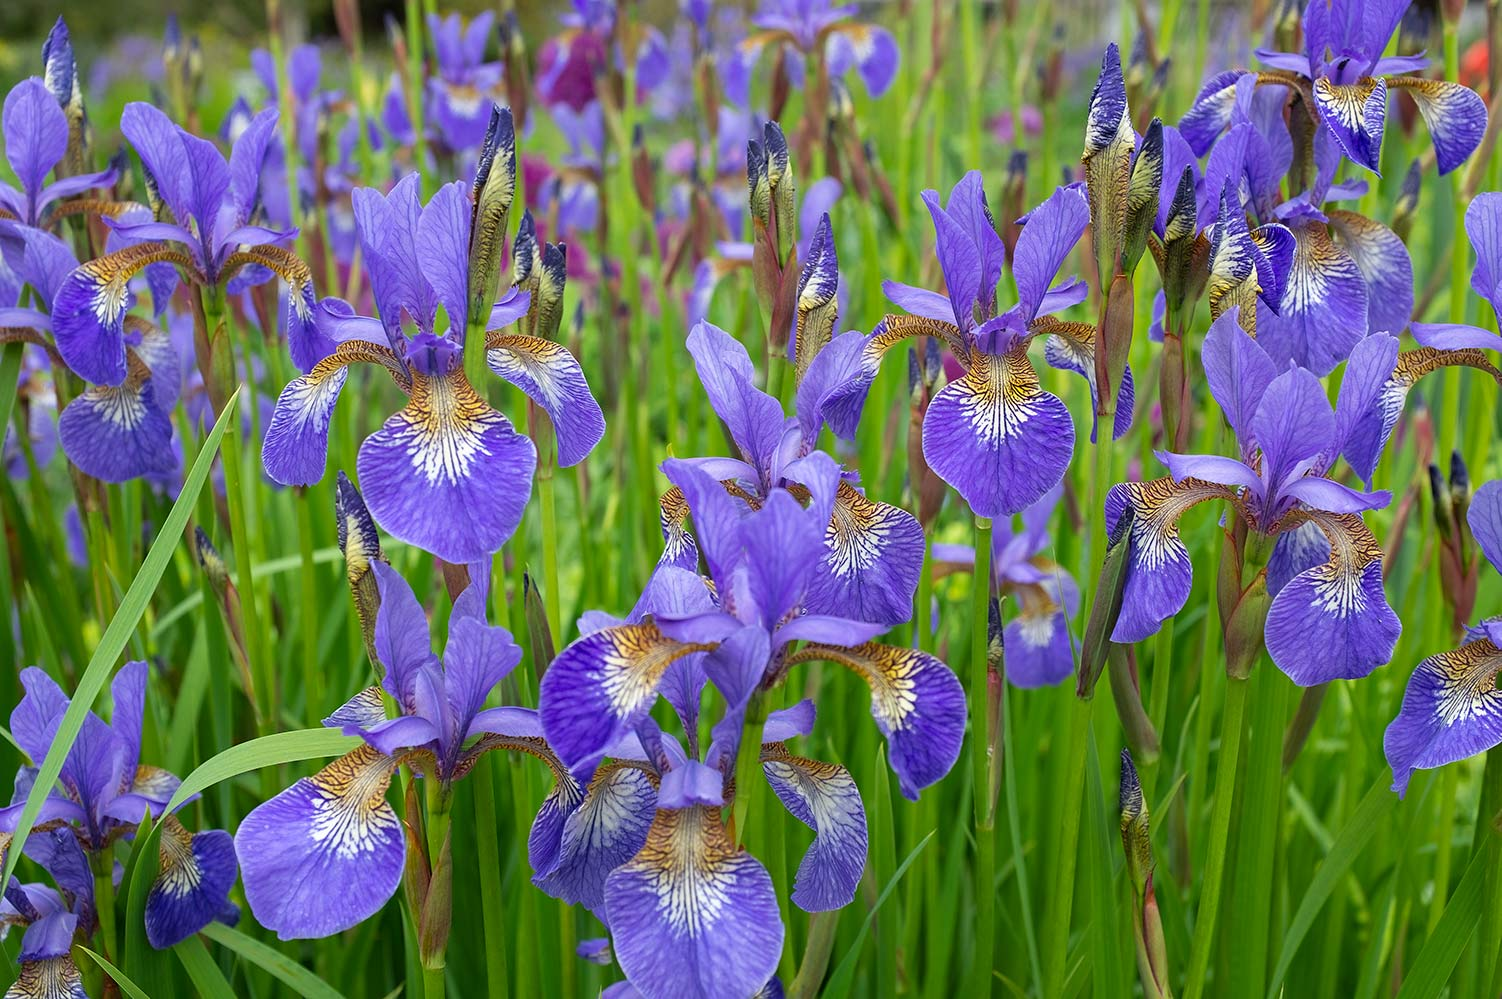 irises growing in a clump